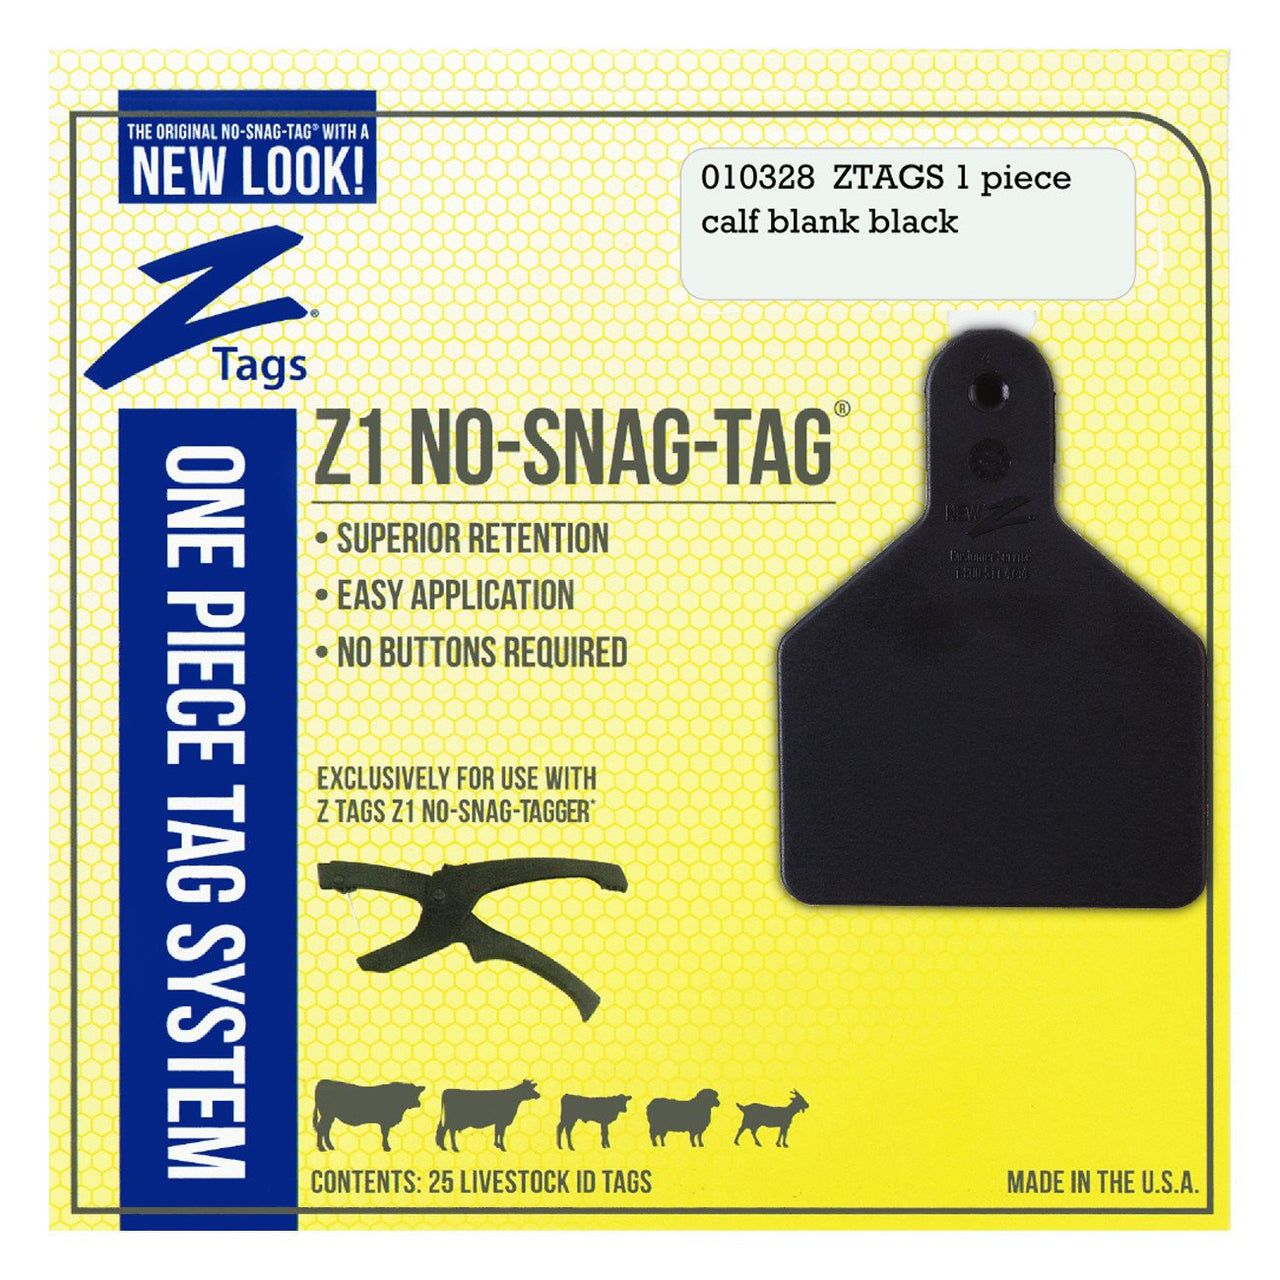 Z Tags 1 piece calf blank (Black)